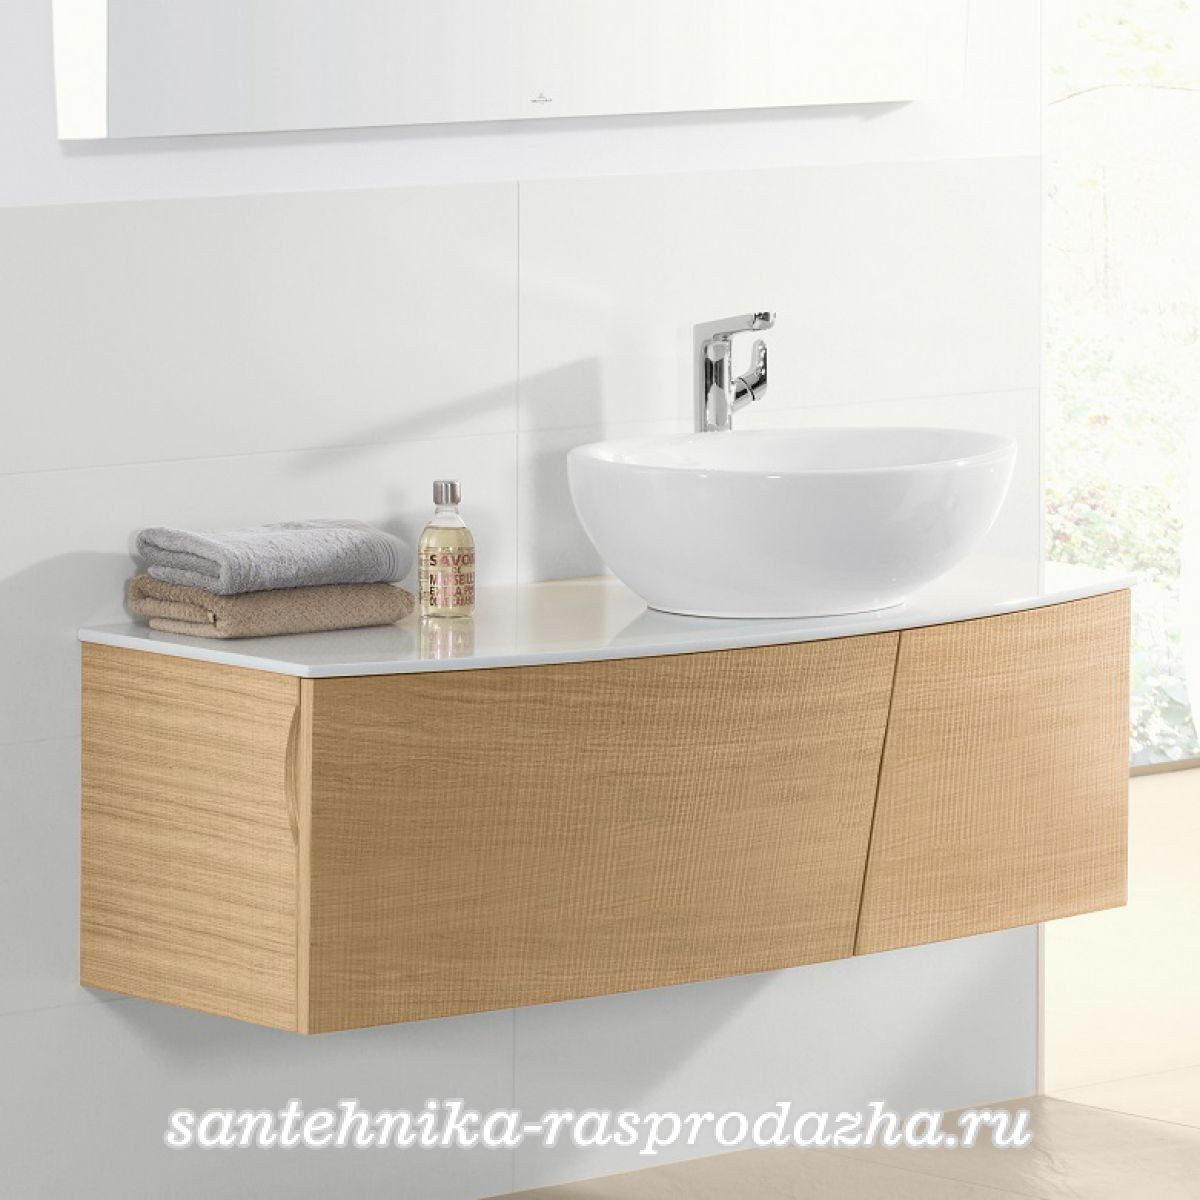 Тумба с раковиной Villeroy & Boch Aveo new generation 130 pure oak